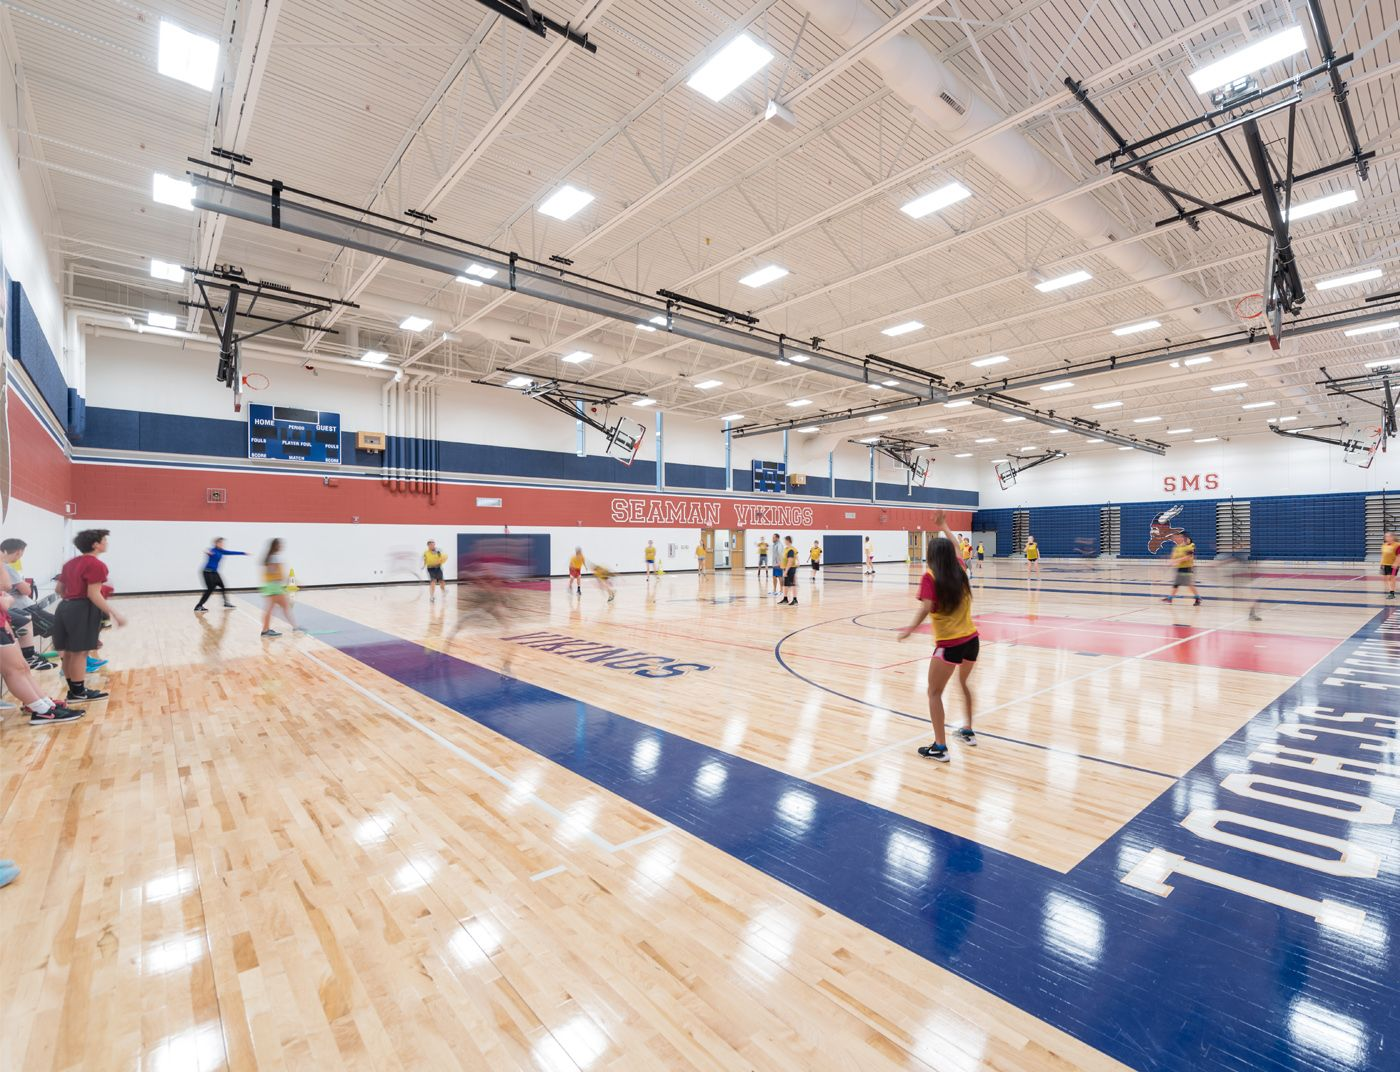 Our Gym Will Be In House And Will Feature State Of The Art Equipment This Is Done In A Effort To Remain True To Our Chi Middle School Charter School Architect